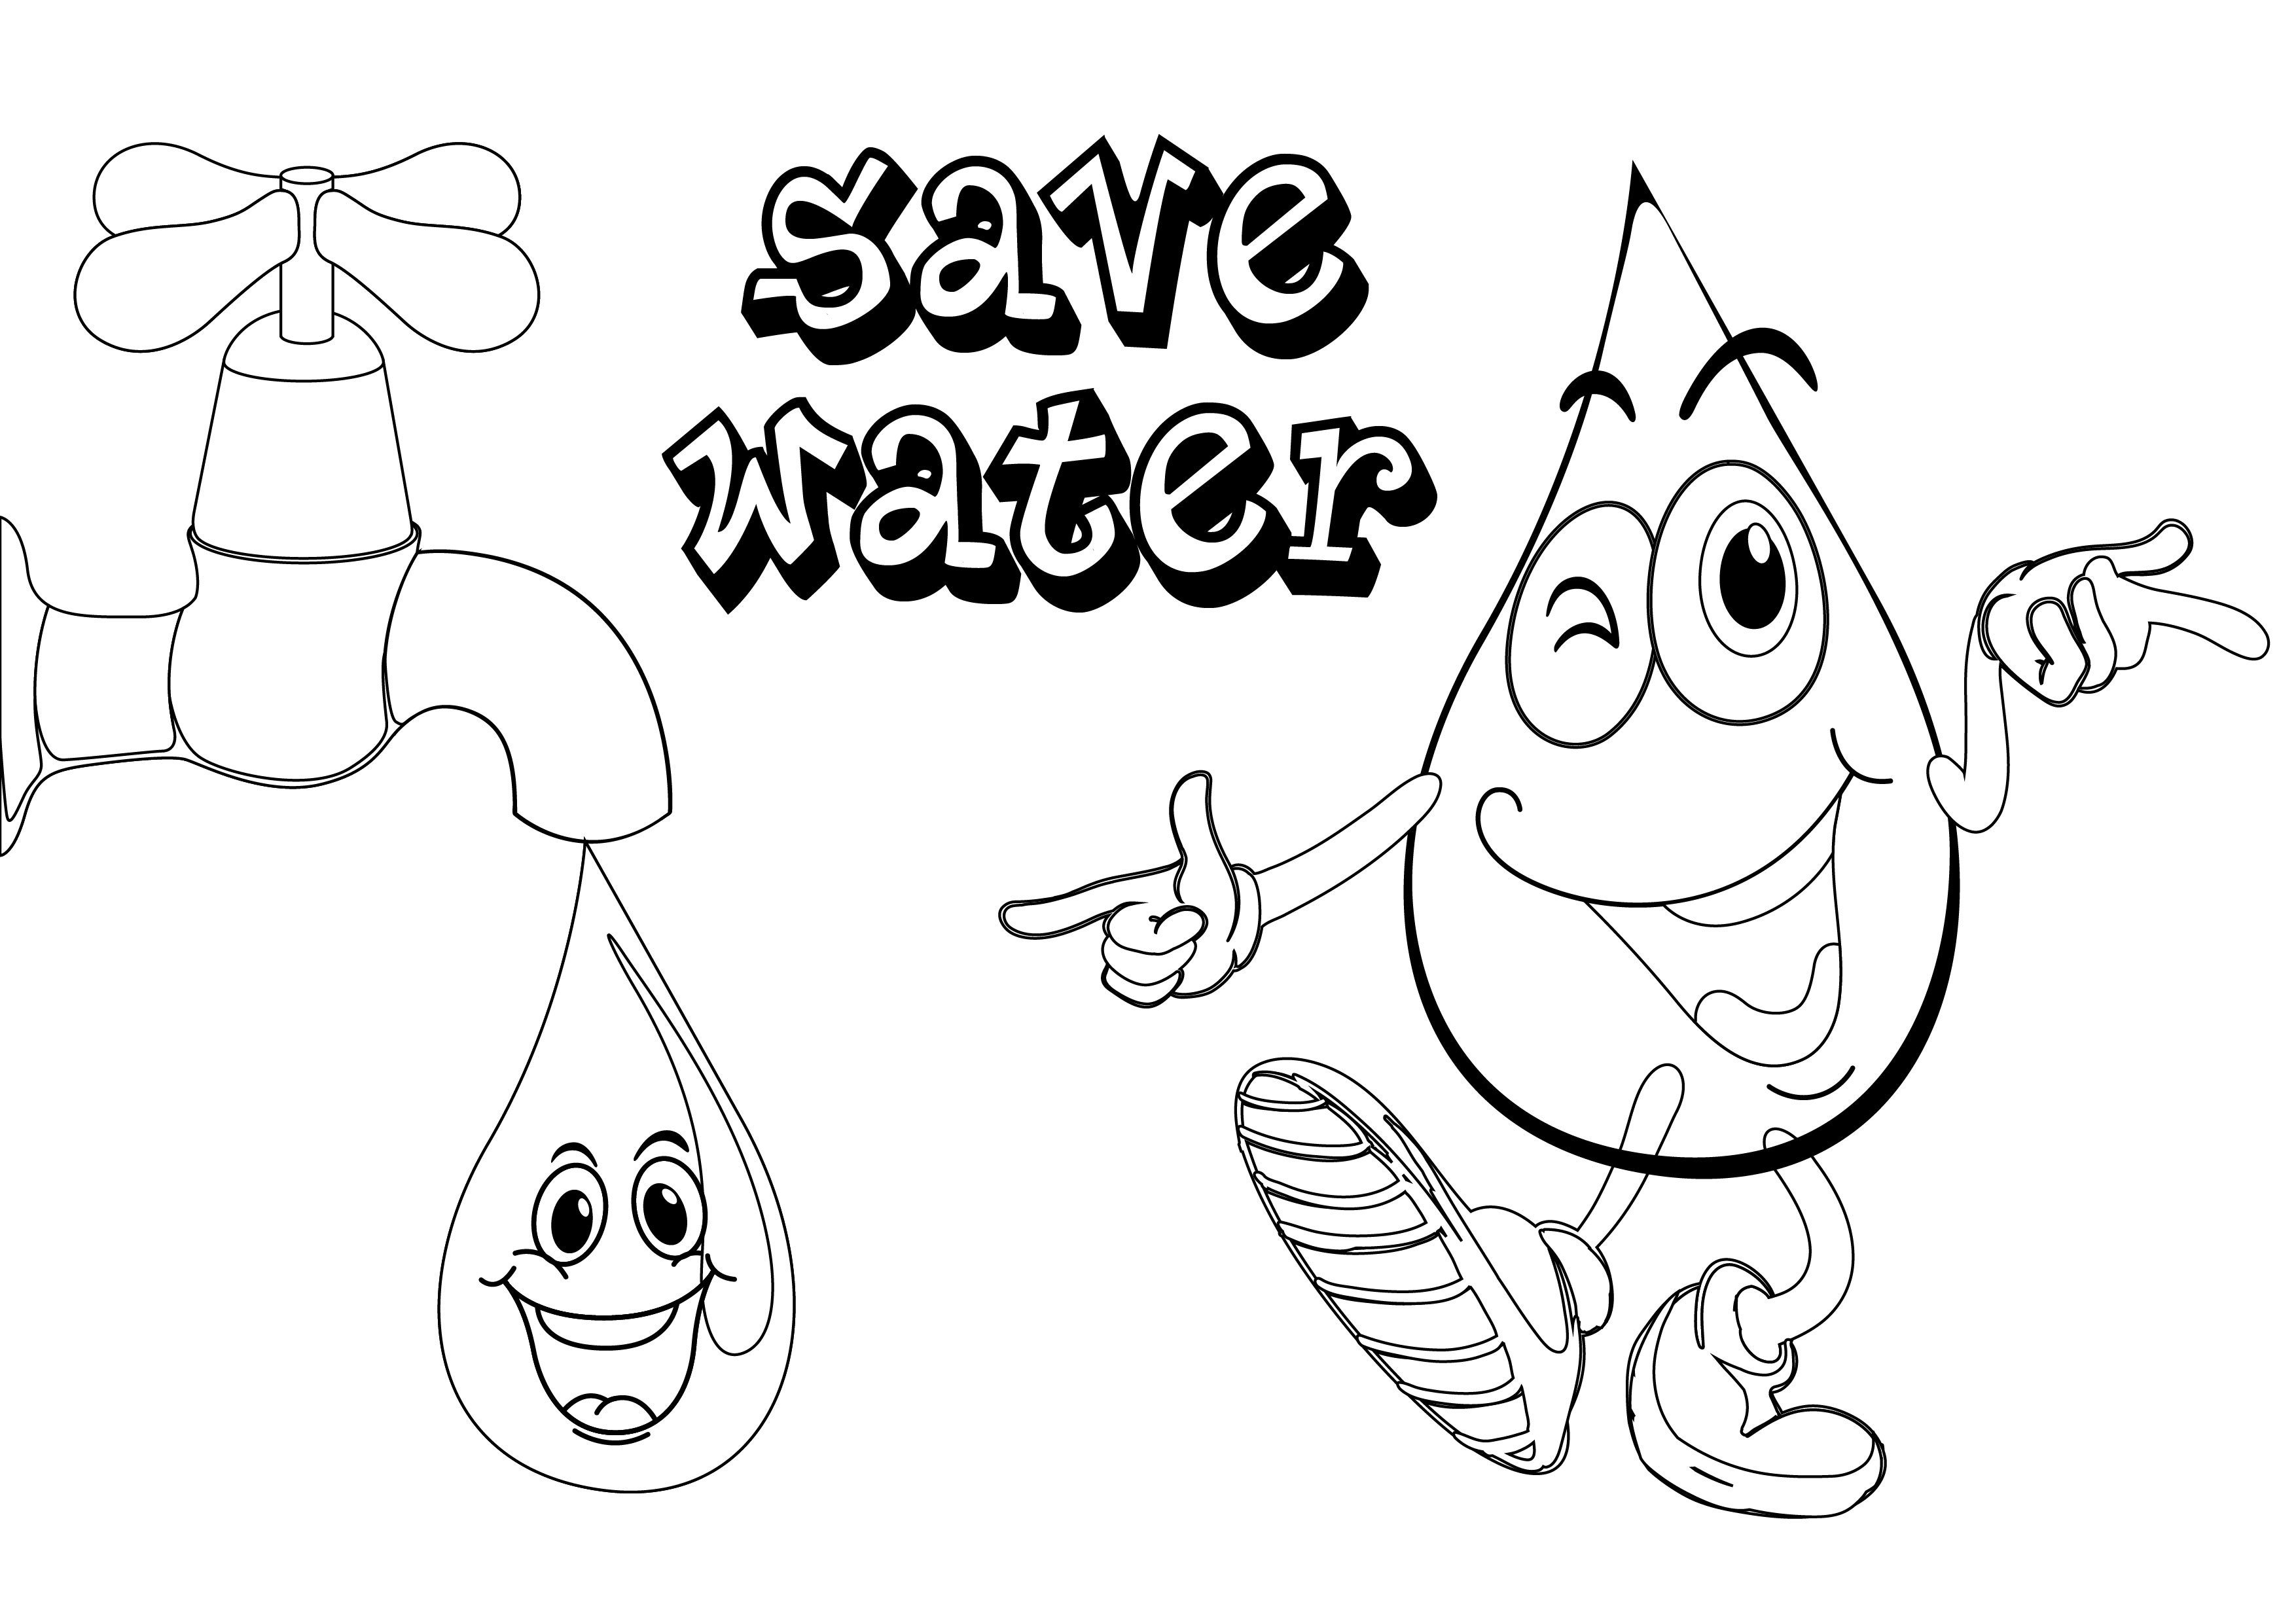 water coloring pages kids | Save Drawing at GetDrawings.com | Free for personal use ...